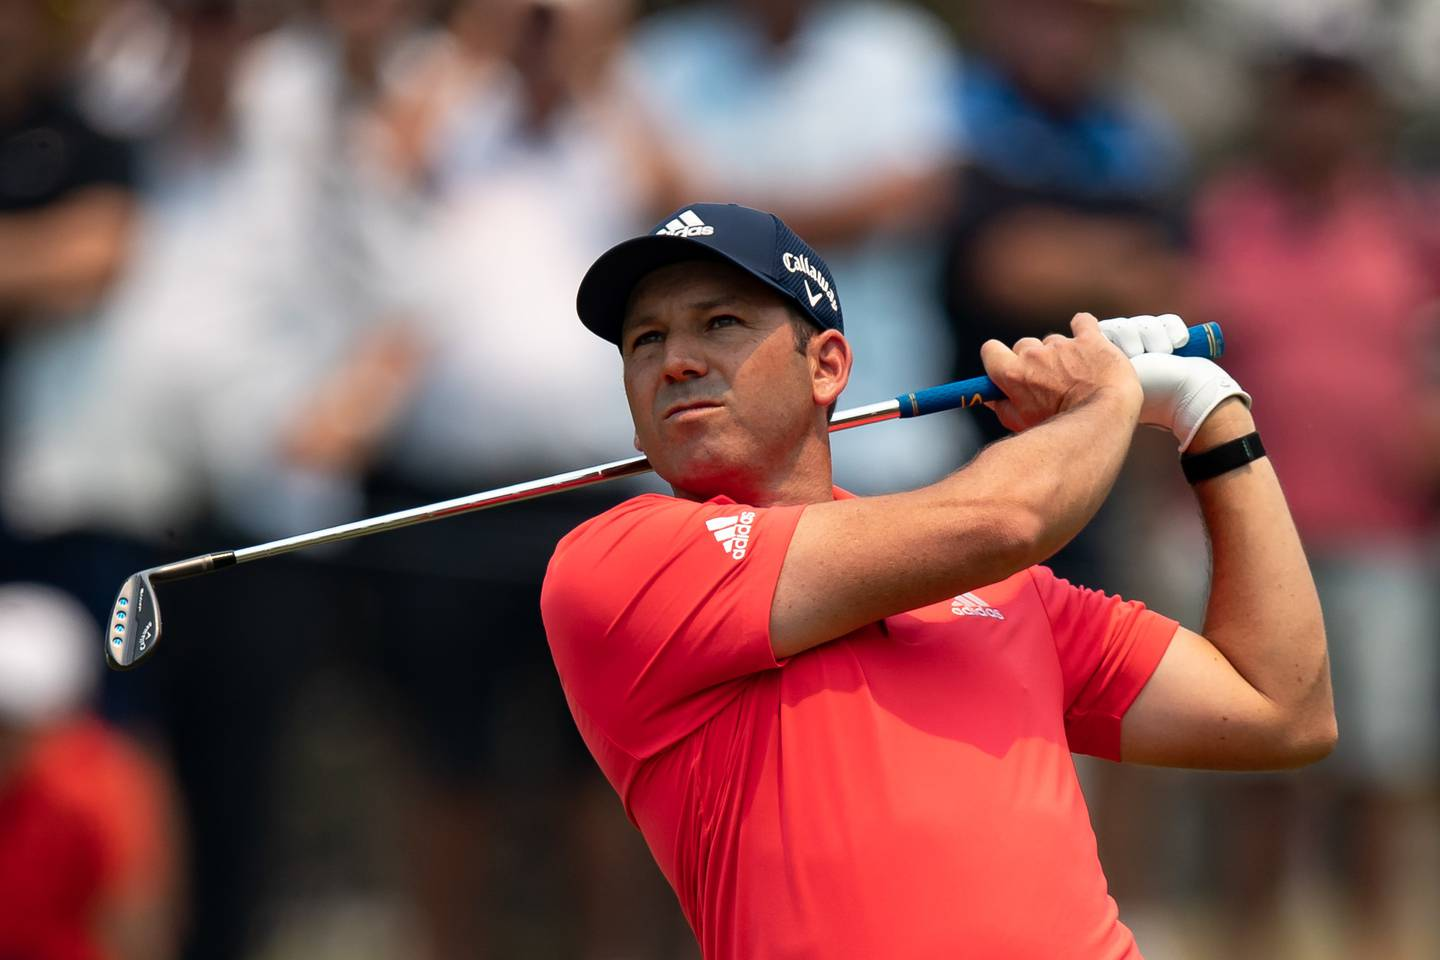 SYDNEY, AUSTRALIA - DECEMBER 05: Sergio Garcia plays a approach shot on the 1st hole during round 1 of The Australian Open Golf at The Australian Golf Club on December 05, 2019 in Sydney, Australia. (Photo by Speed Media/Icon Sportswire)